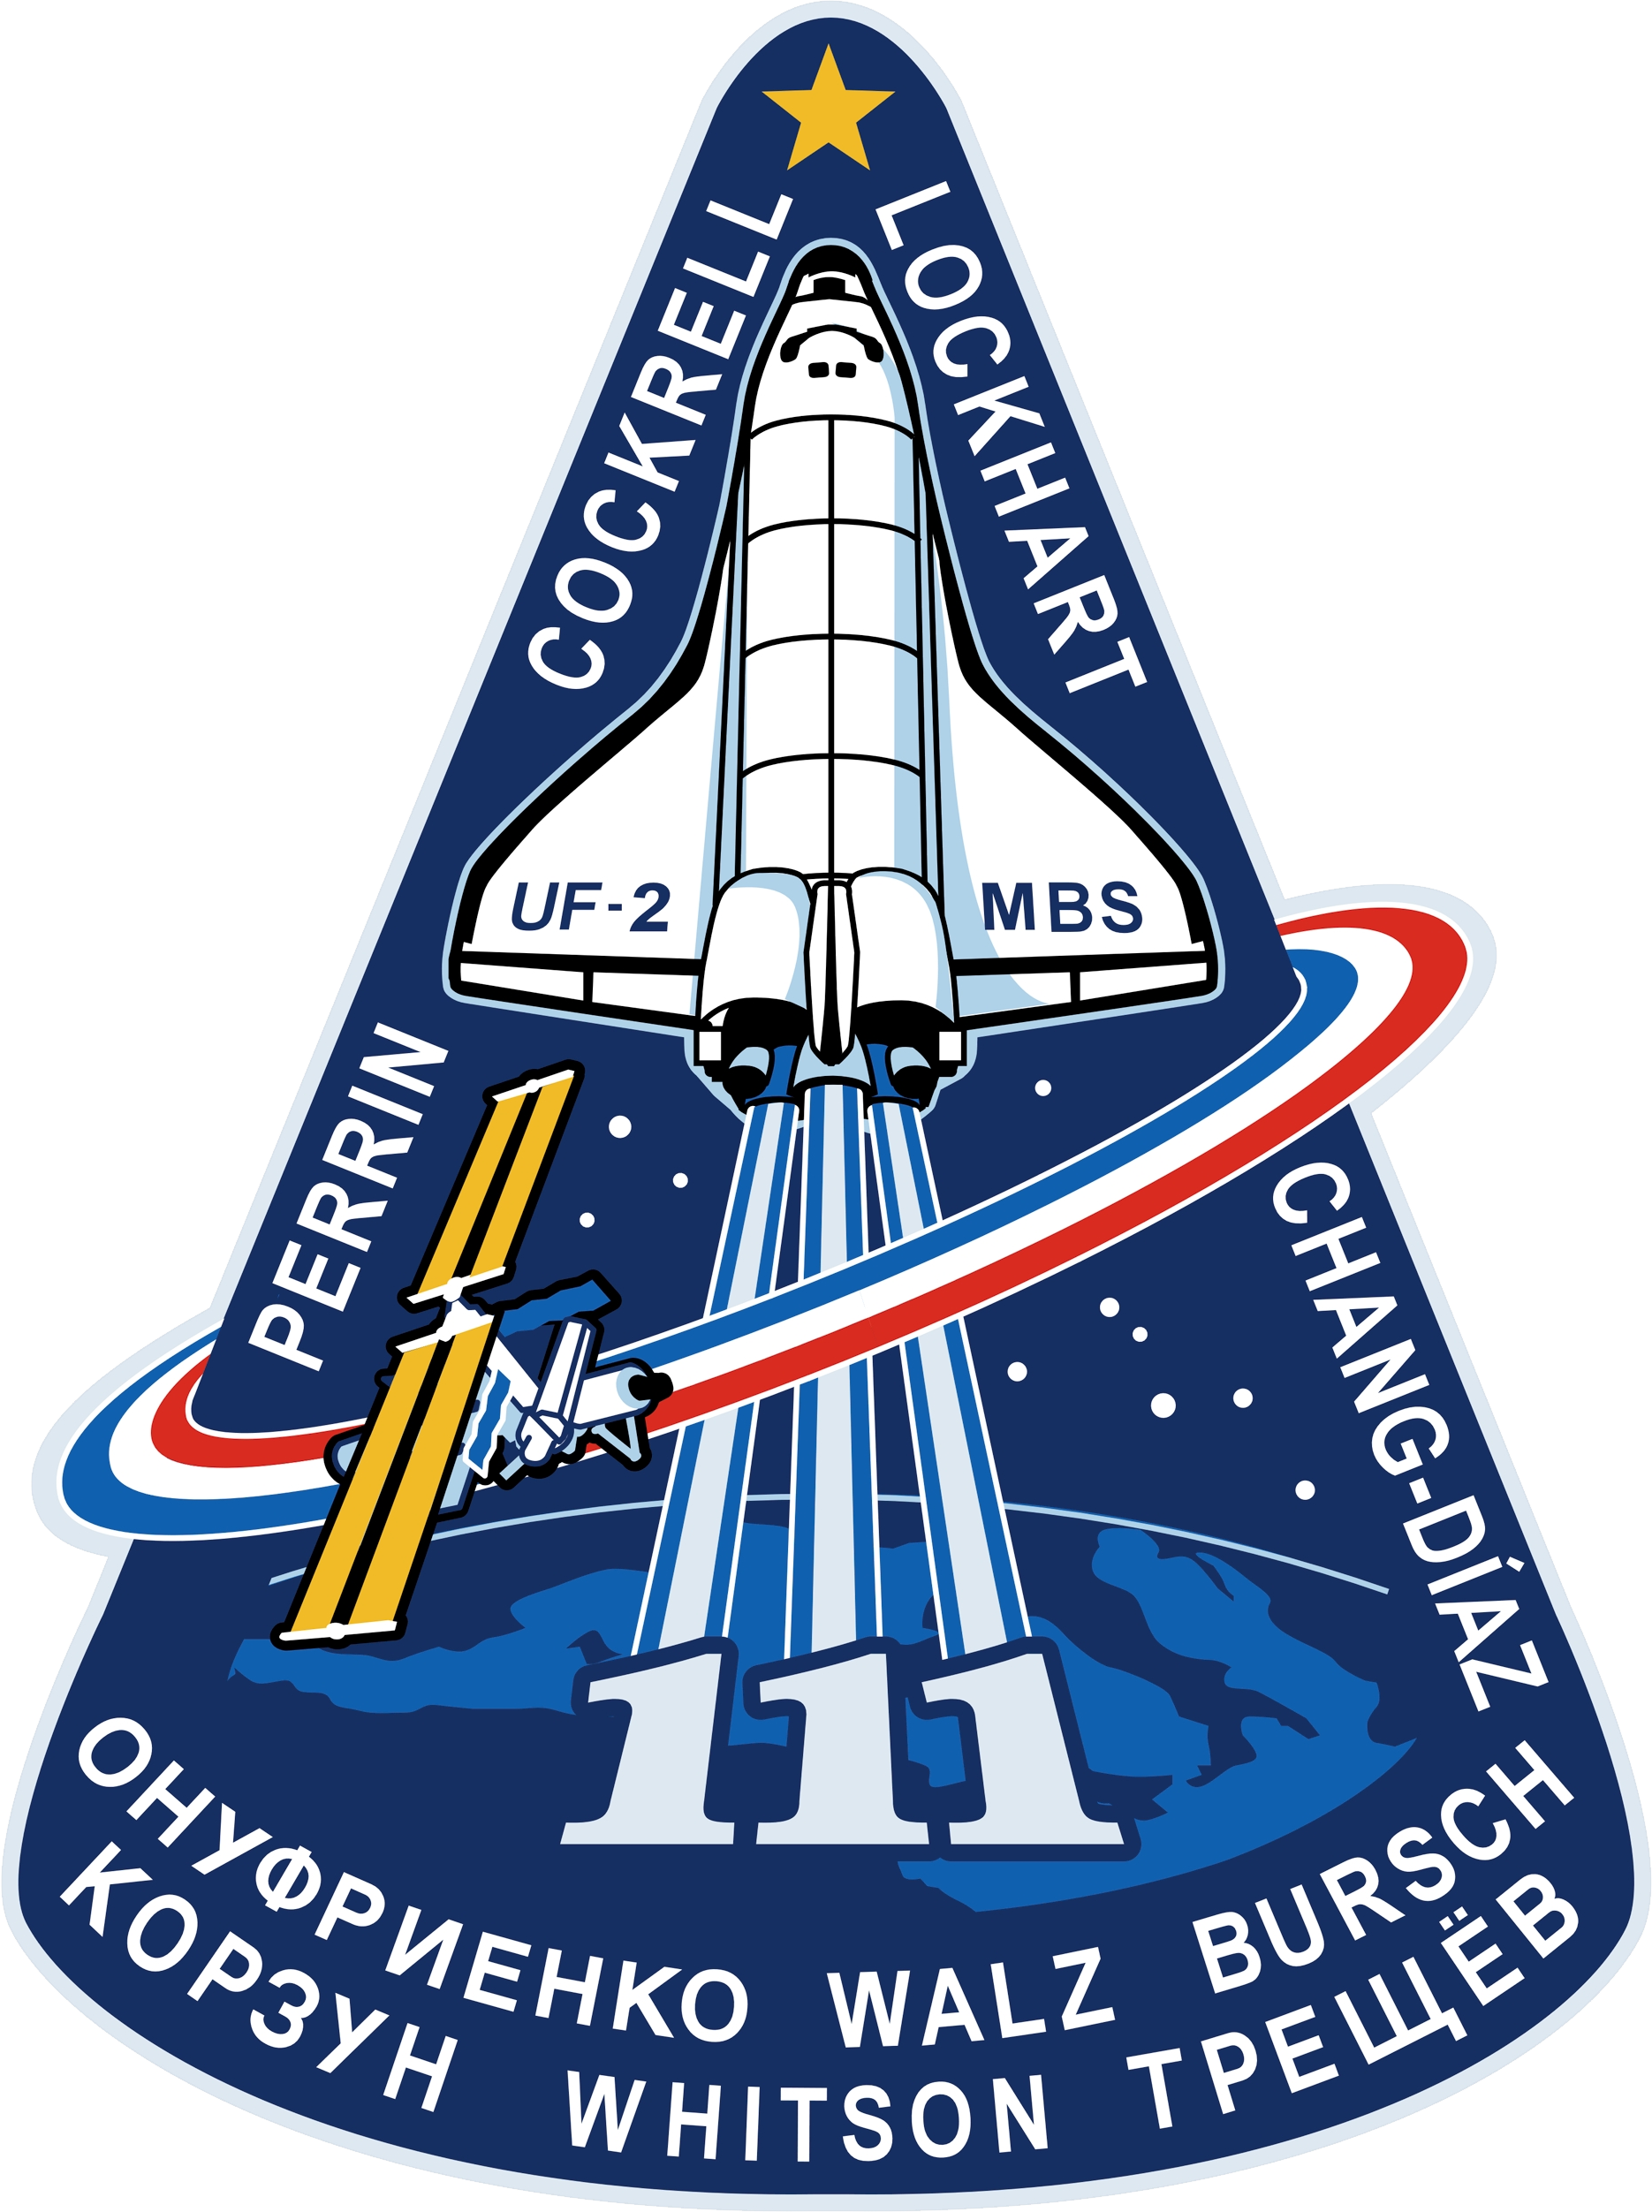 File:Sts-111-patch.png